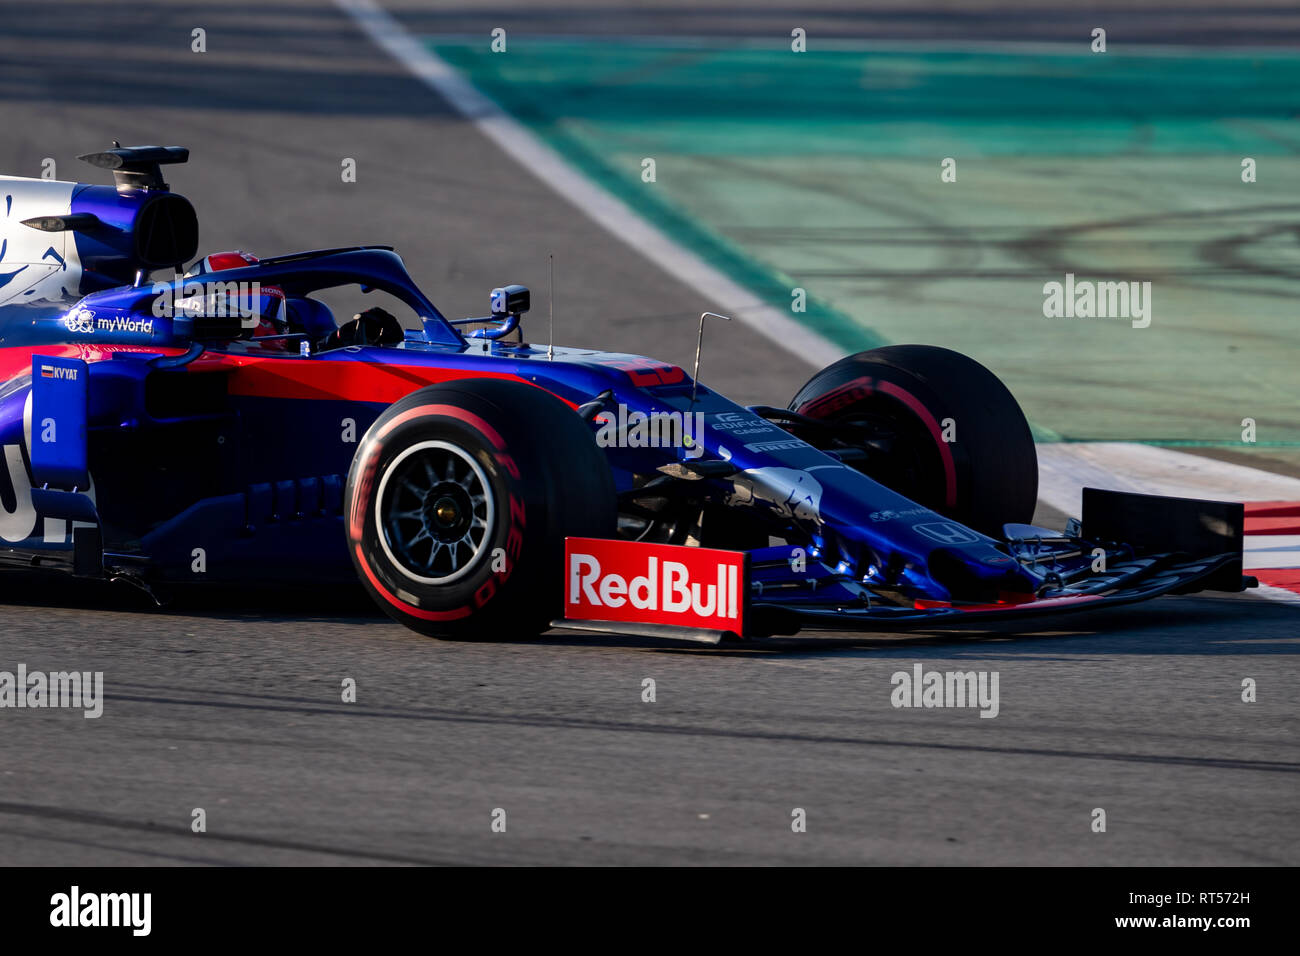 Daniil Kvyat of Scuderia Toro Rosso Honda seen in action during the second journey of second week F1 Test Days in Montmelo circuit. - Stock Image